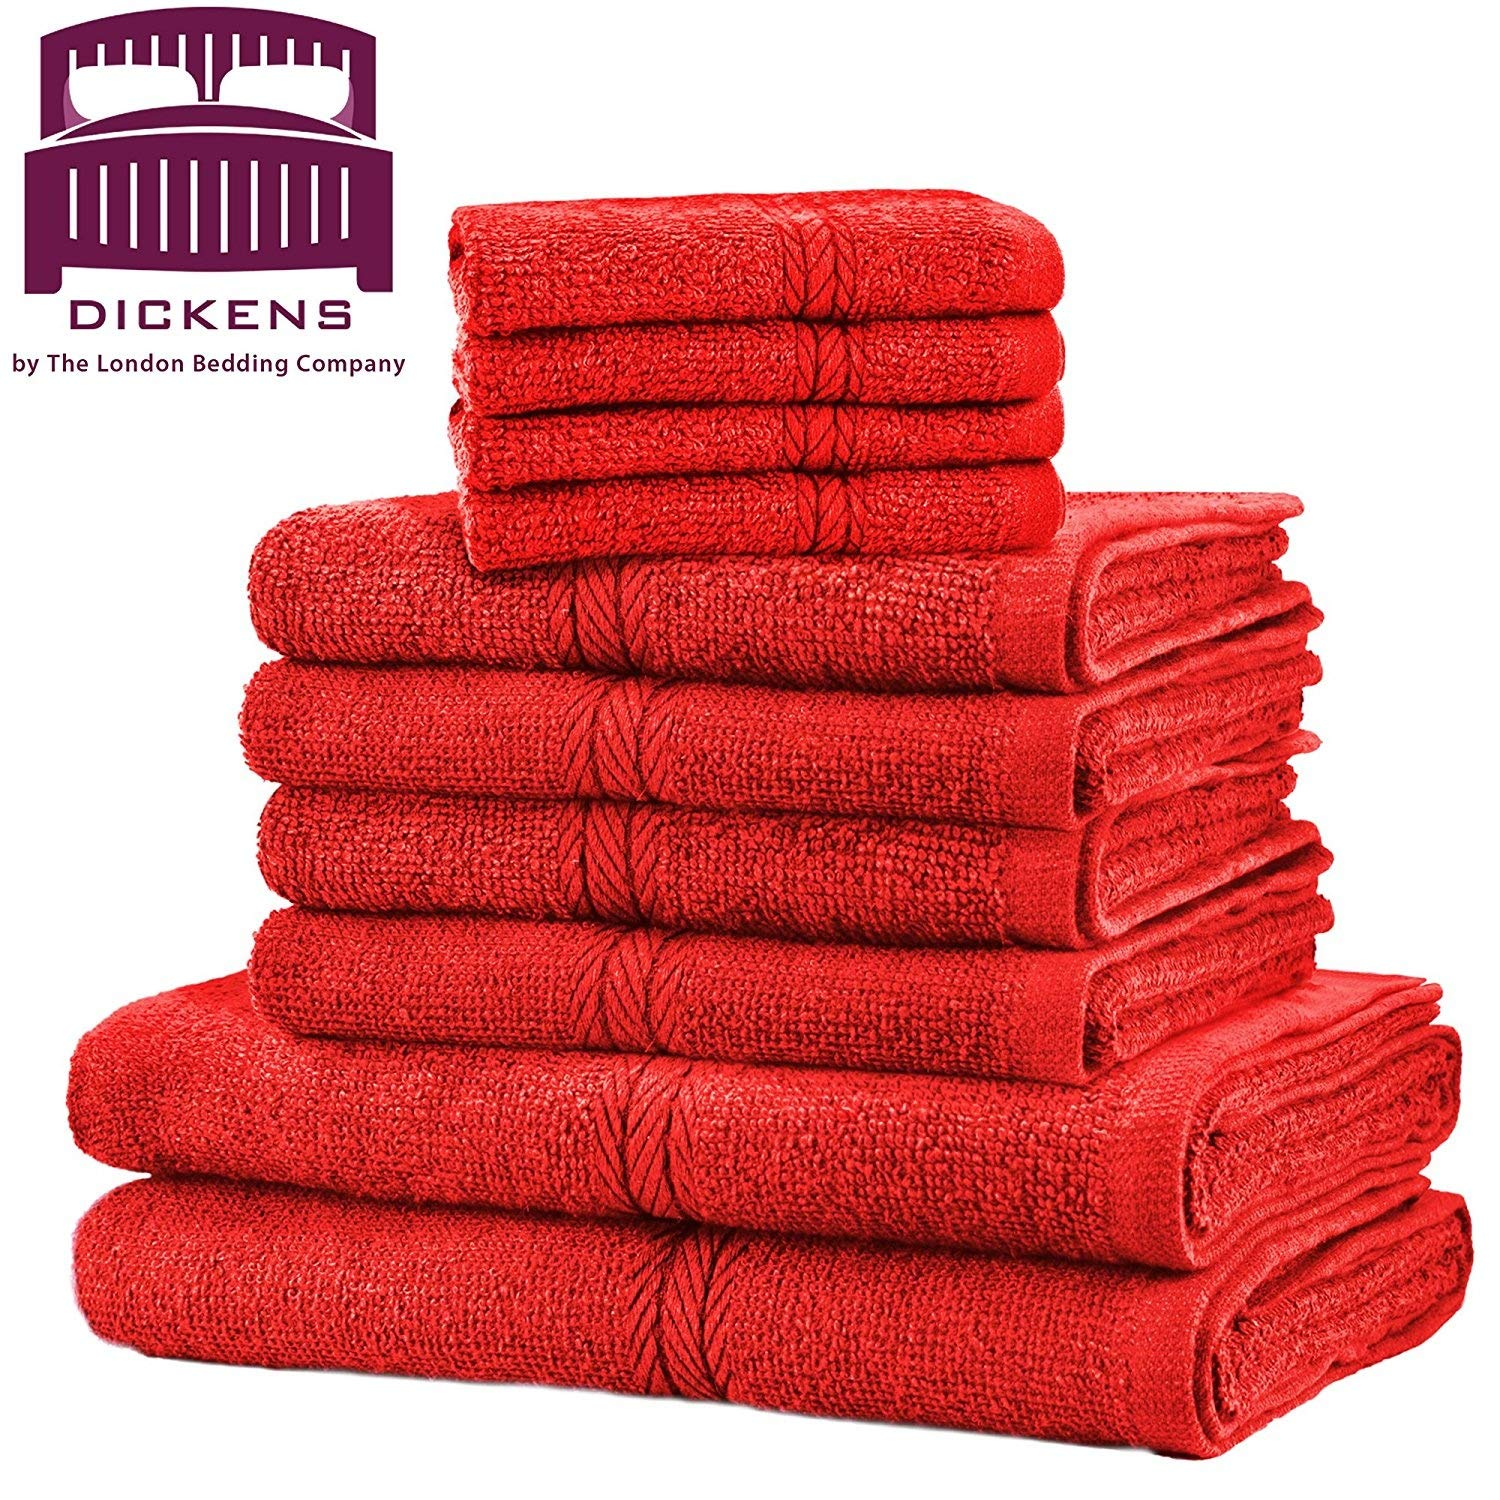 DICKENS LUXURY TOWEL BALE SET 100% EGYPTIAN COTTON 10PC FACE HAND BATH TOWELS (Black) Evelyn Living